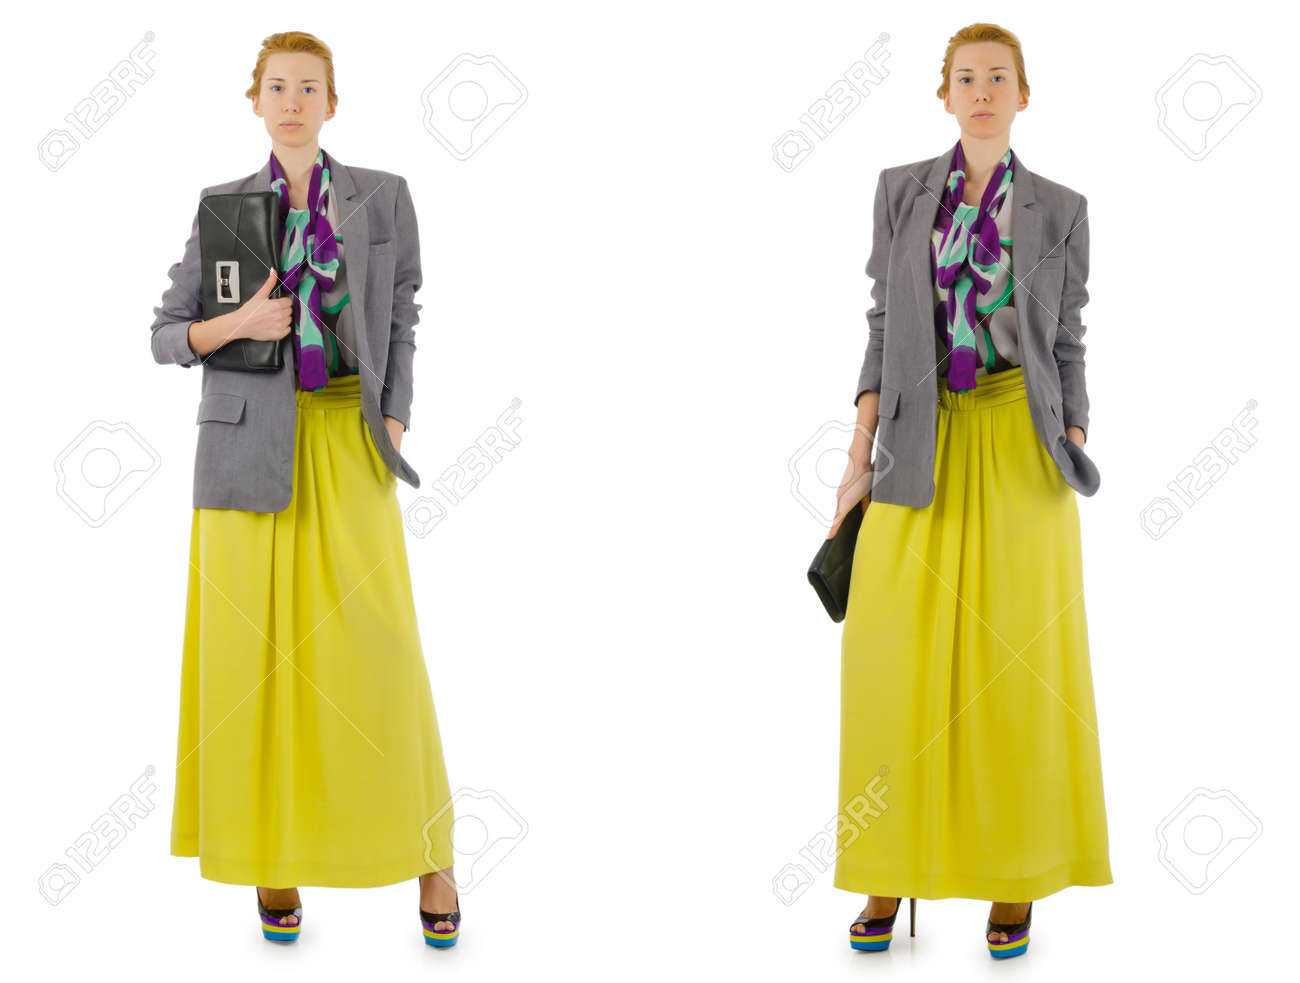 Woman fashion concept isolated on white Stock Photo - 26968126